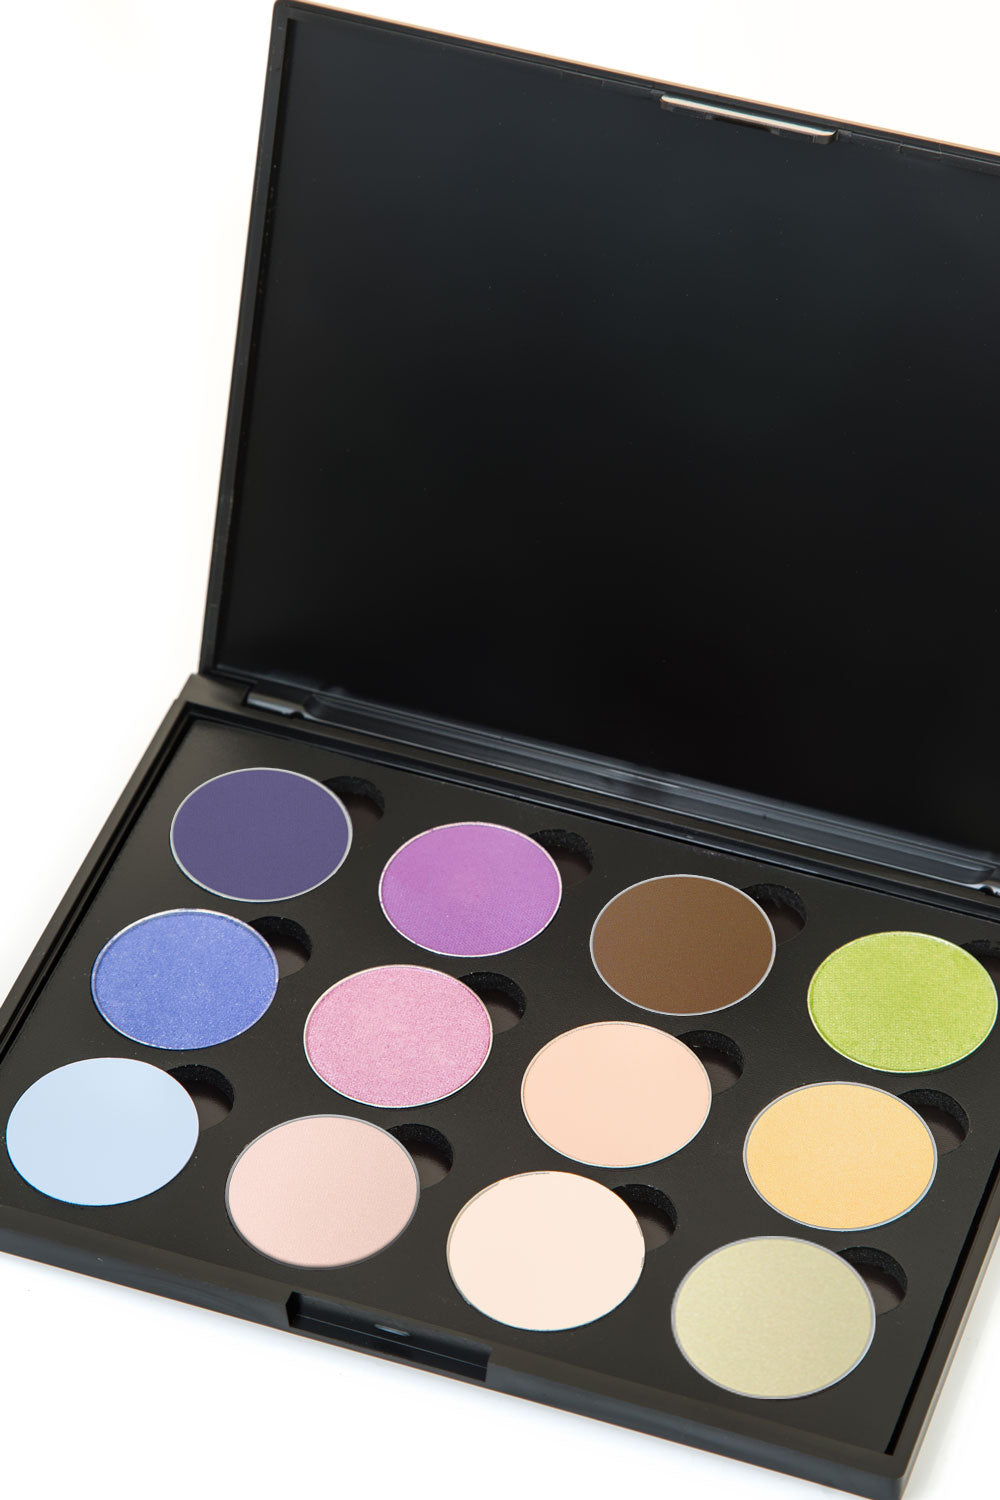 Type 1 Twelve Shadow Palette